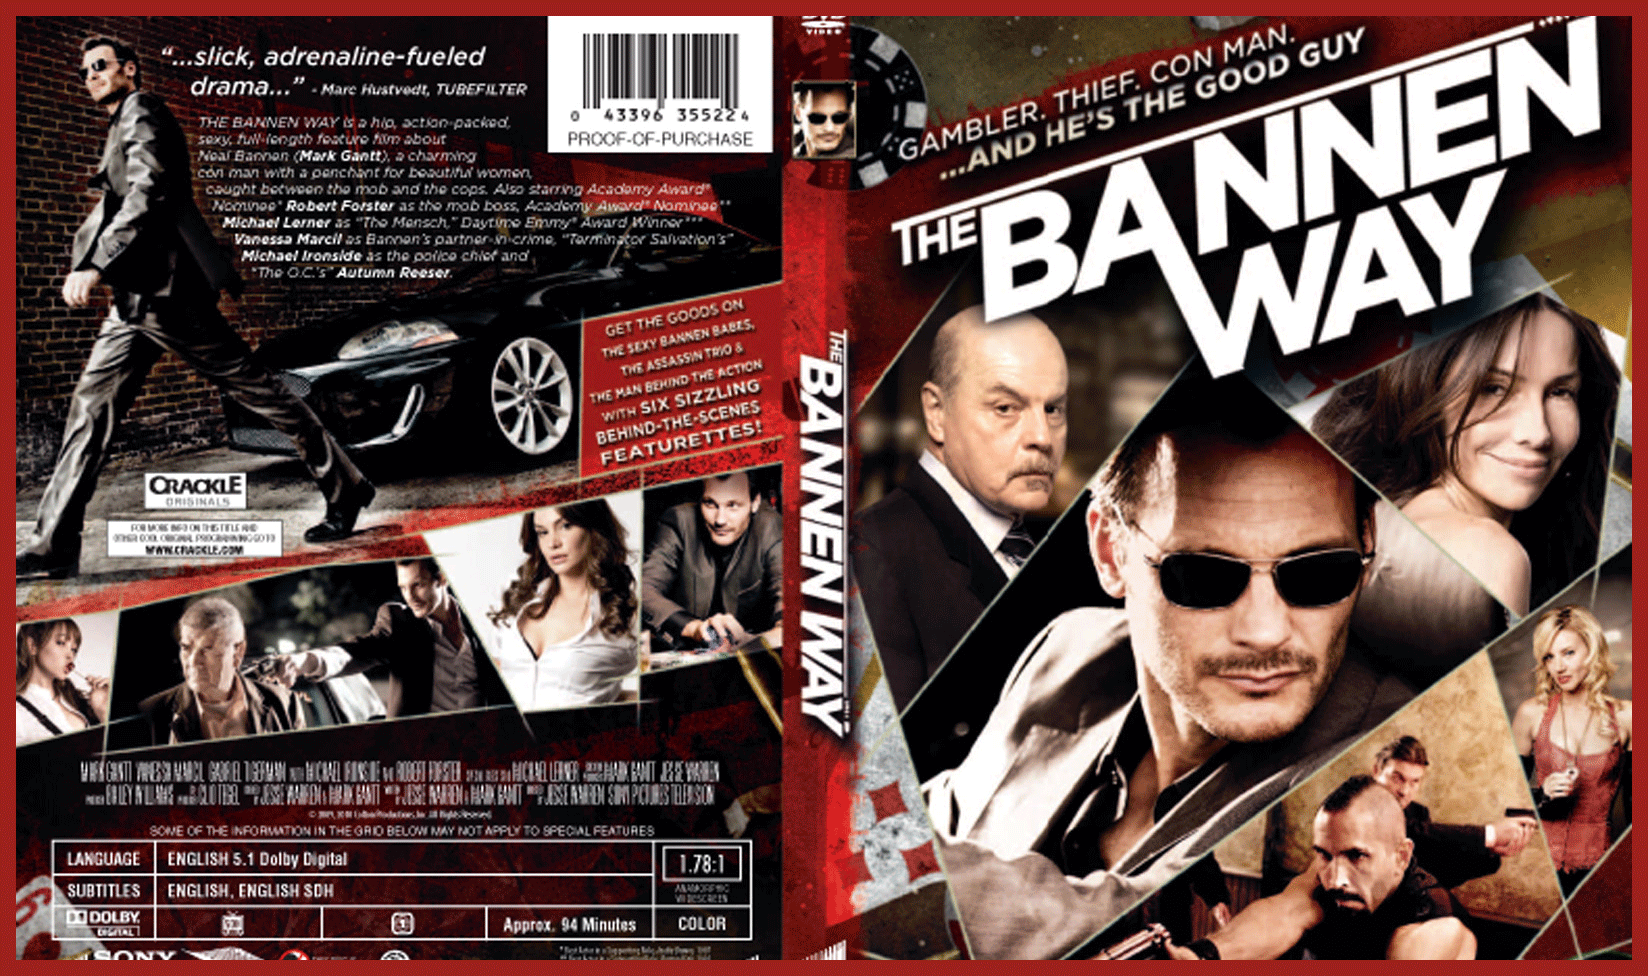 The Bannen Way DVD